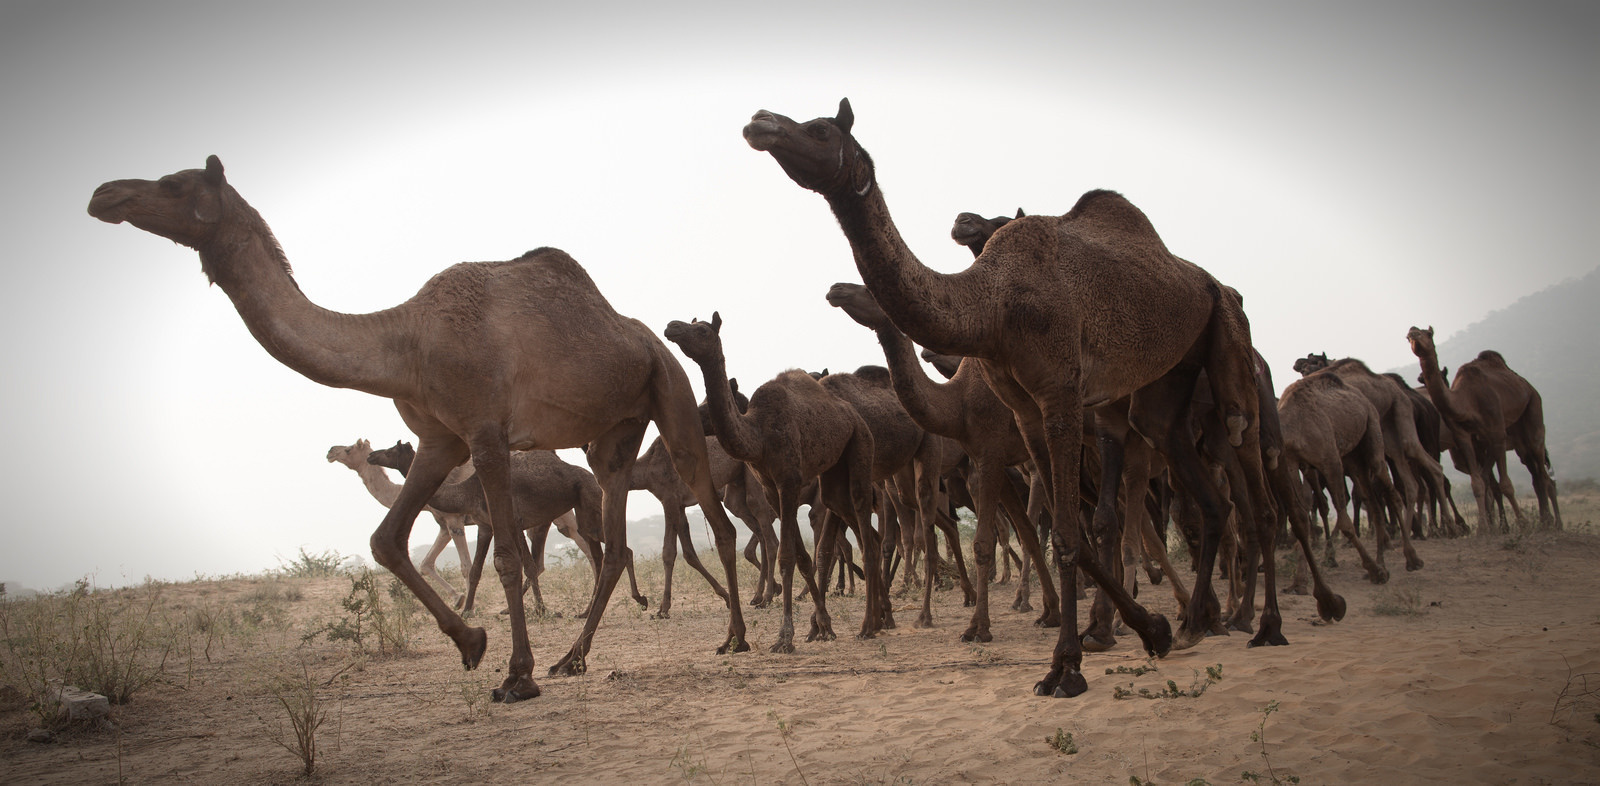 In 2009, the town of Docker River in Australia was under siege when 6,000 camels went in search of water.